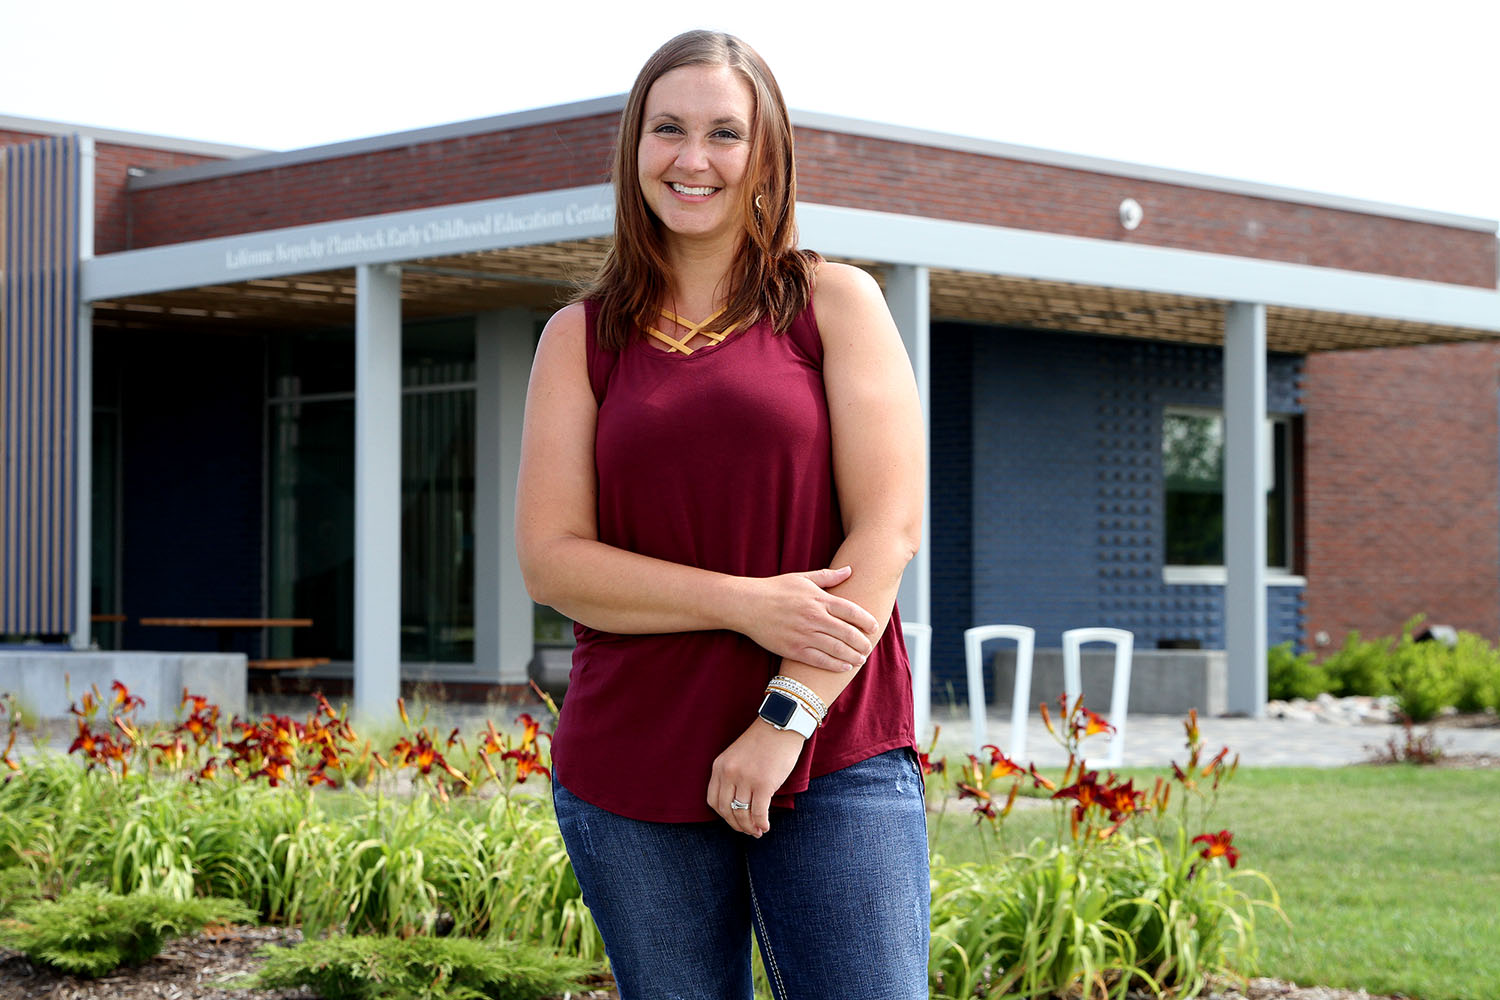 Chelsea Bartling is the new interim director of UNK's LaVonne Kopecky Plambeck Early Childhood Education Center. Bartling has 11 years of experience in the early childhood field as a preschool teacher and early childhood specialist with Grand Island and Kearney public schools, and she worked as a teacher's aide and preschool teacher in UNK's former Child Development Center while enrolled at the university as an undergraduate student. (Photo by Tyler Ellyson, UNK Communications)